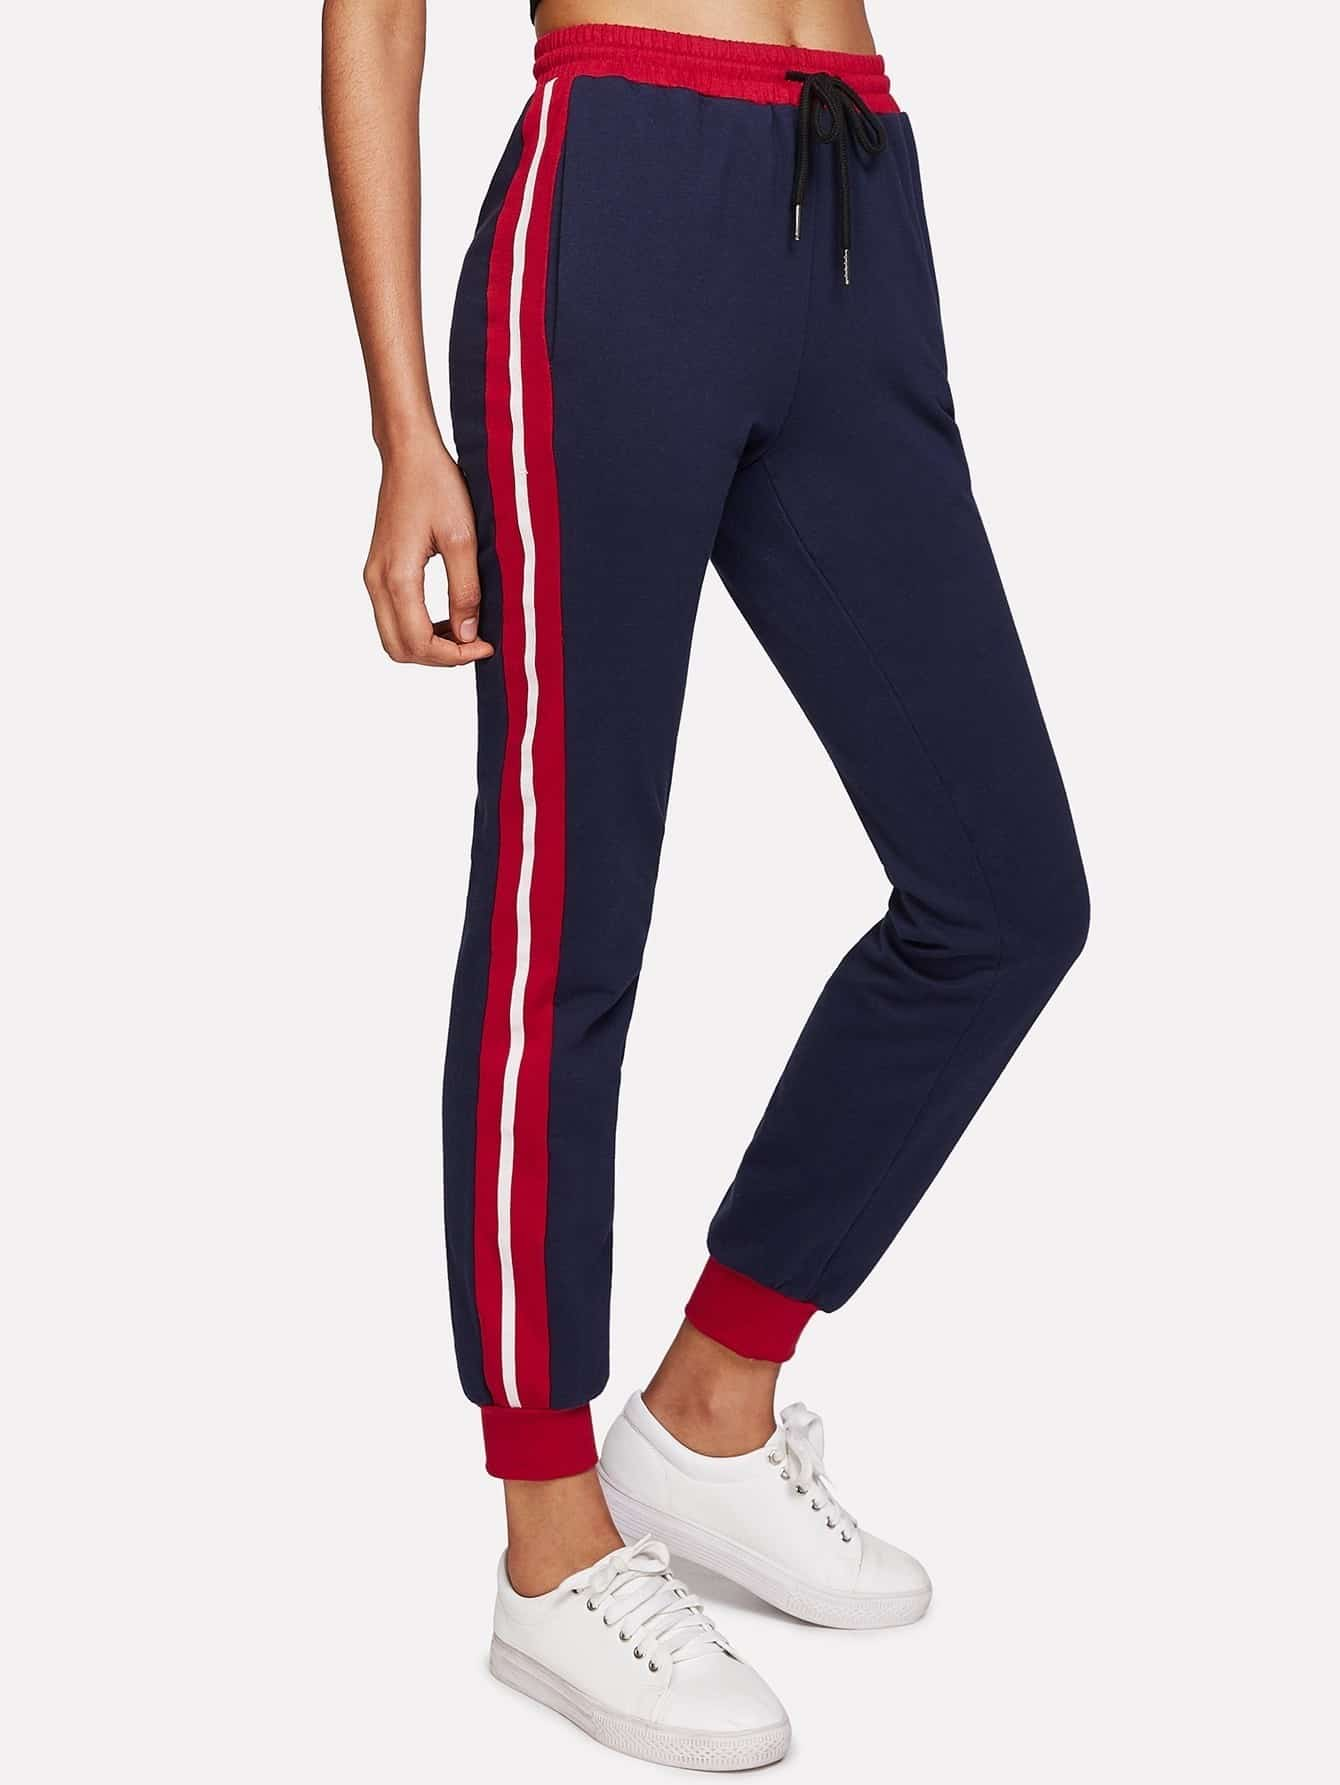 Image of Contrast Panel Side Heather Knit Sweatpants